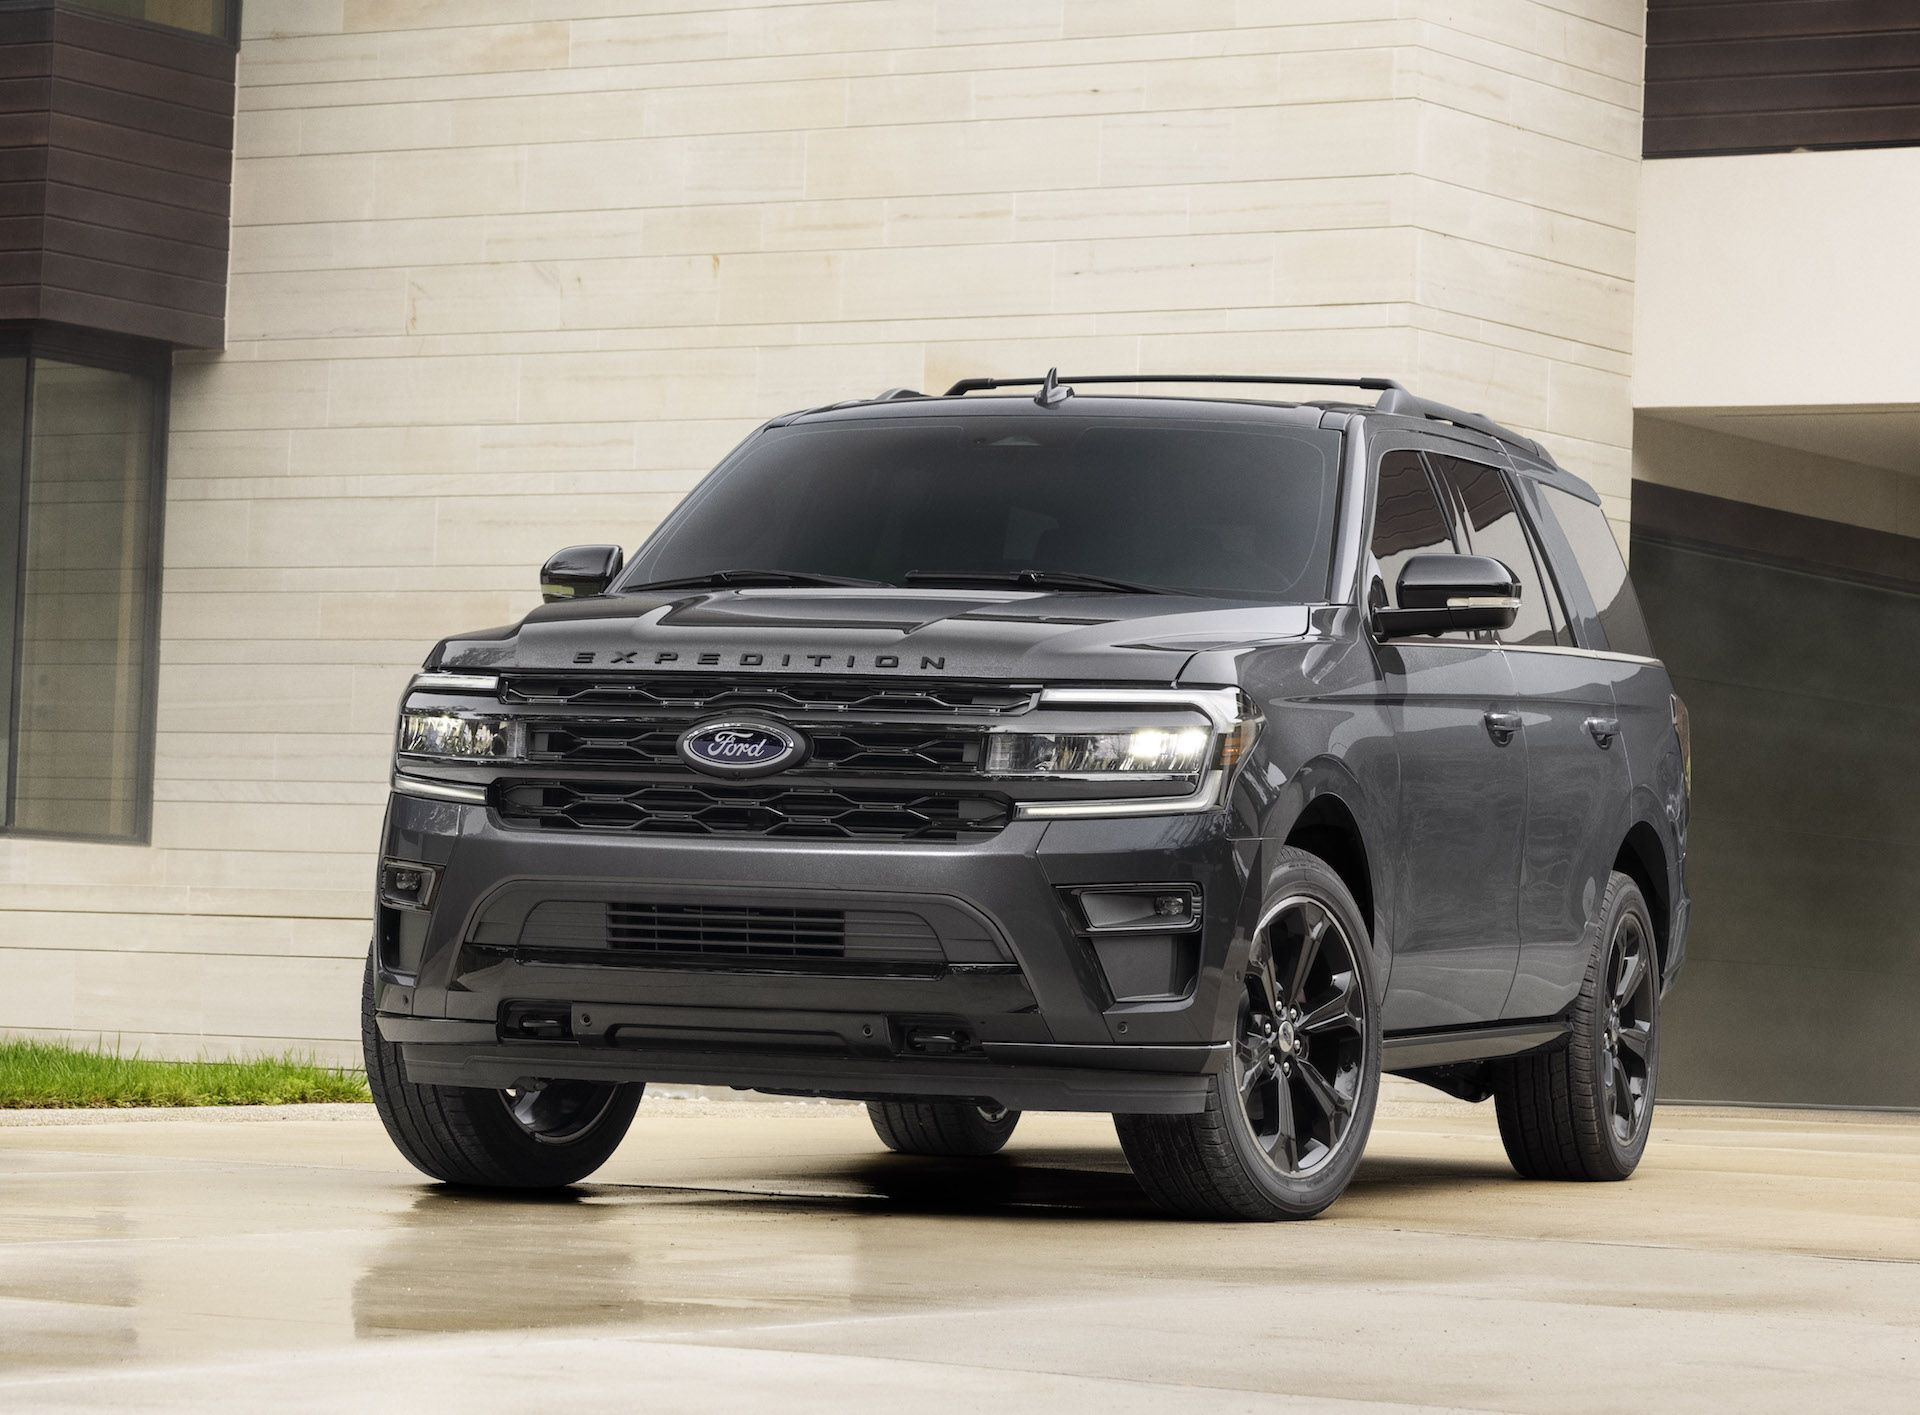 2022-Ford-Expedition-Stealth-00006-1